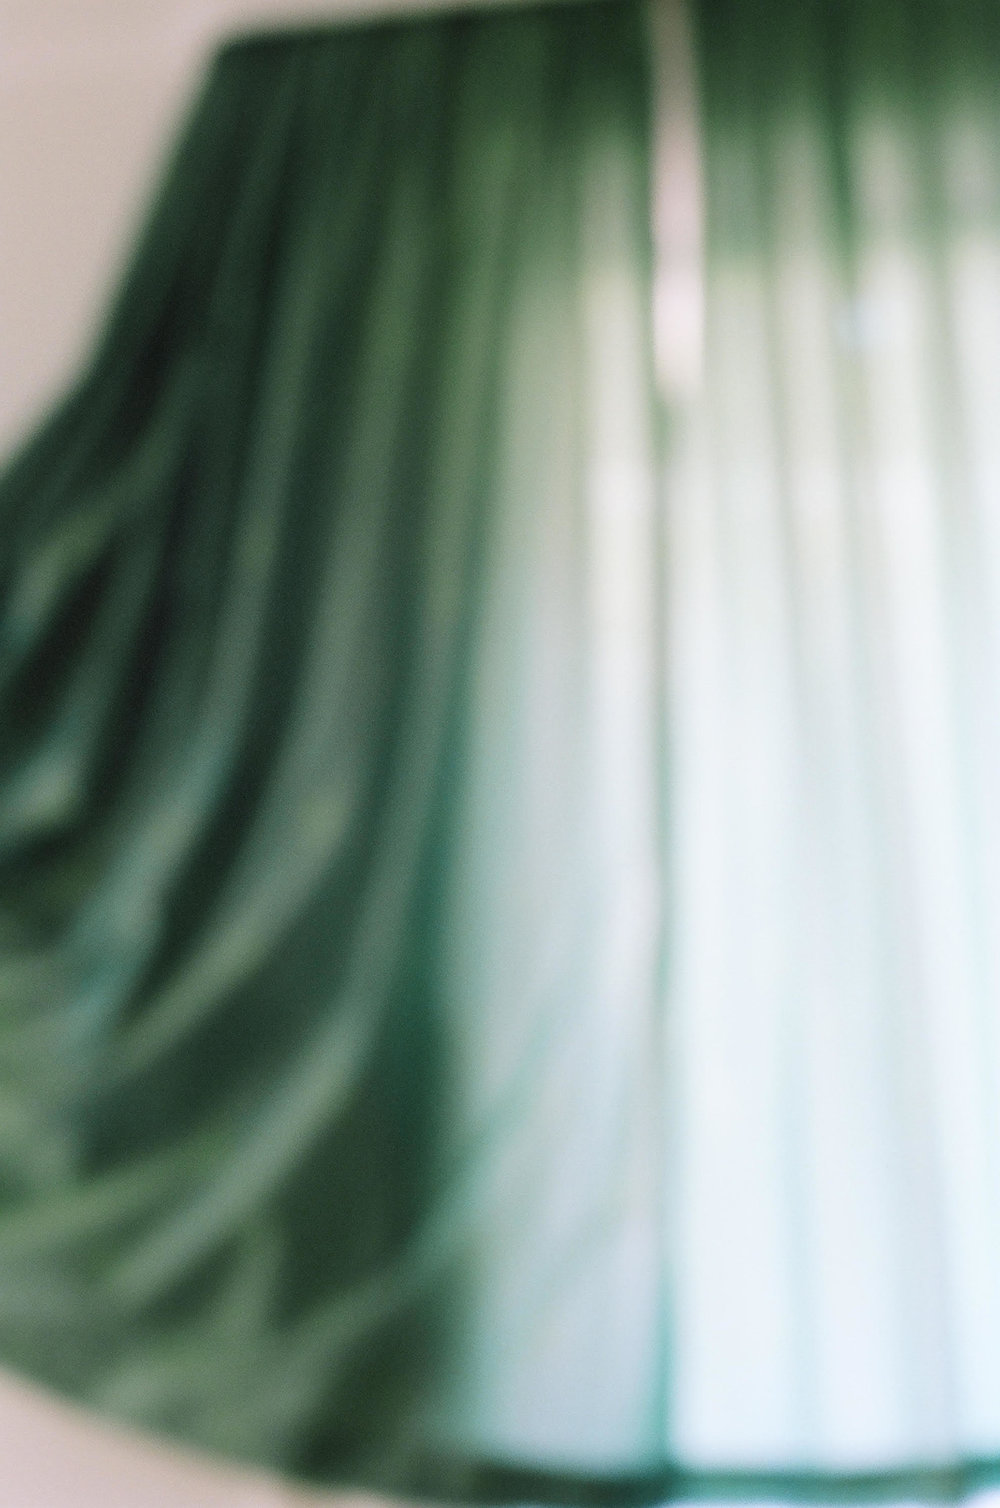 Maxine Henryson, June breeze in green curtain, Naples, Italy, 2012, Archival pigment print, 54 x 36 inches